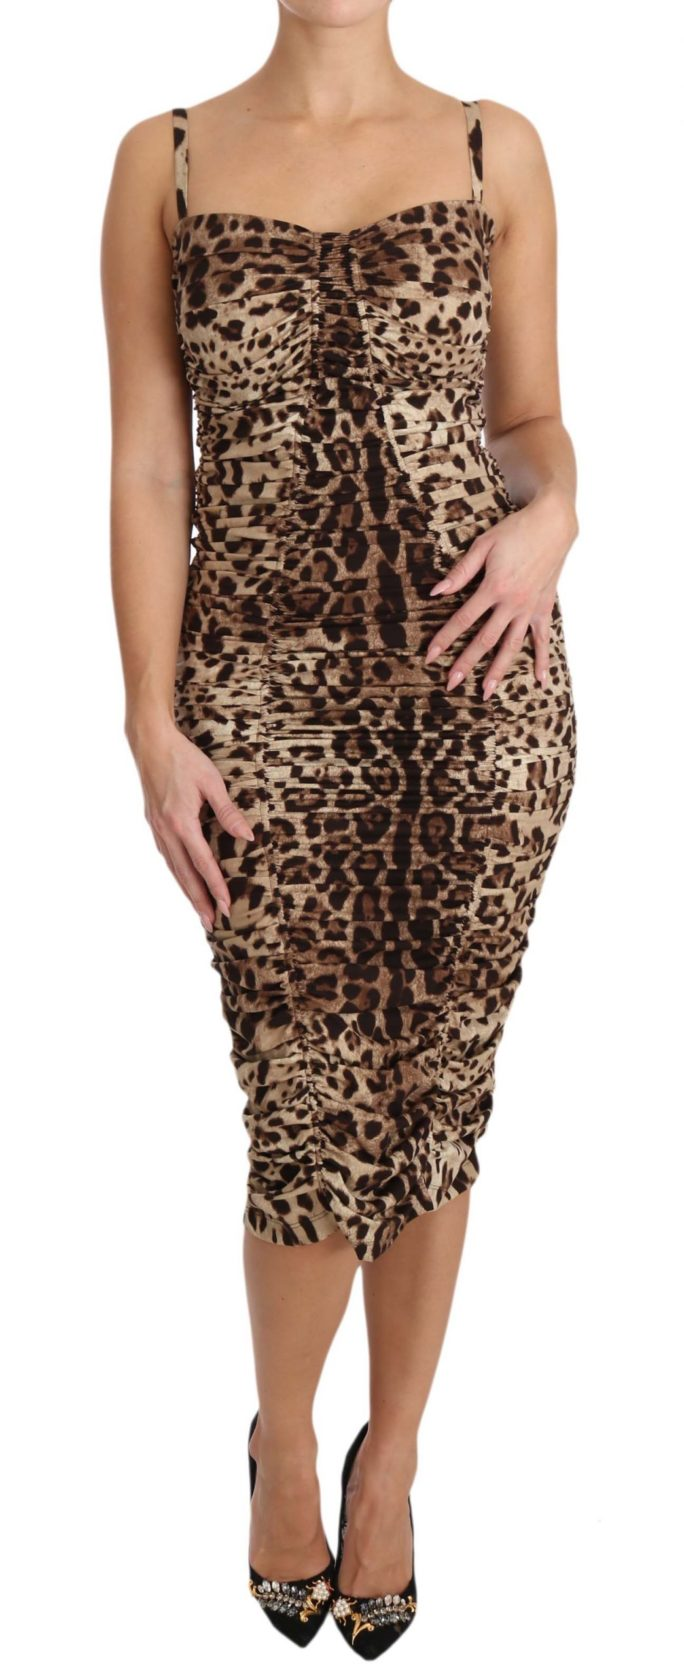 641142 Brown Leopard Silk Sheath Bodycon Dress.jpg